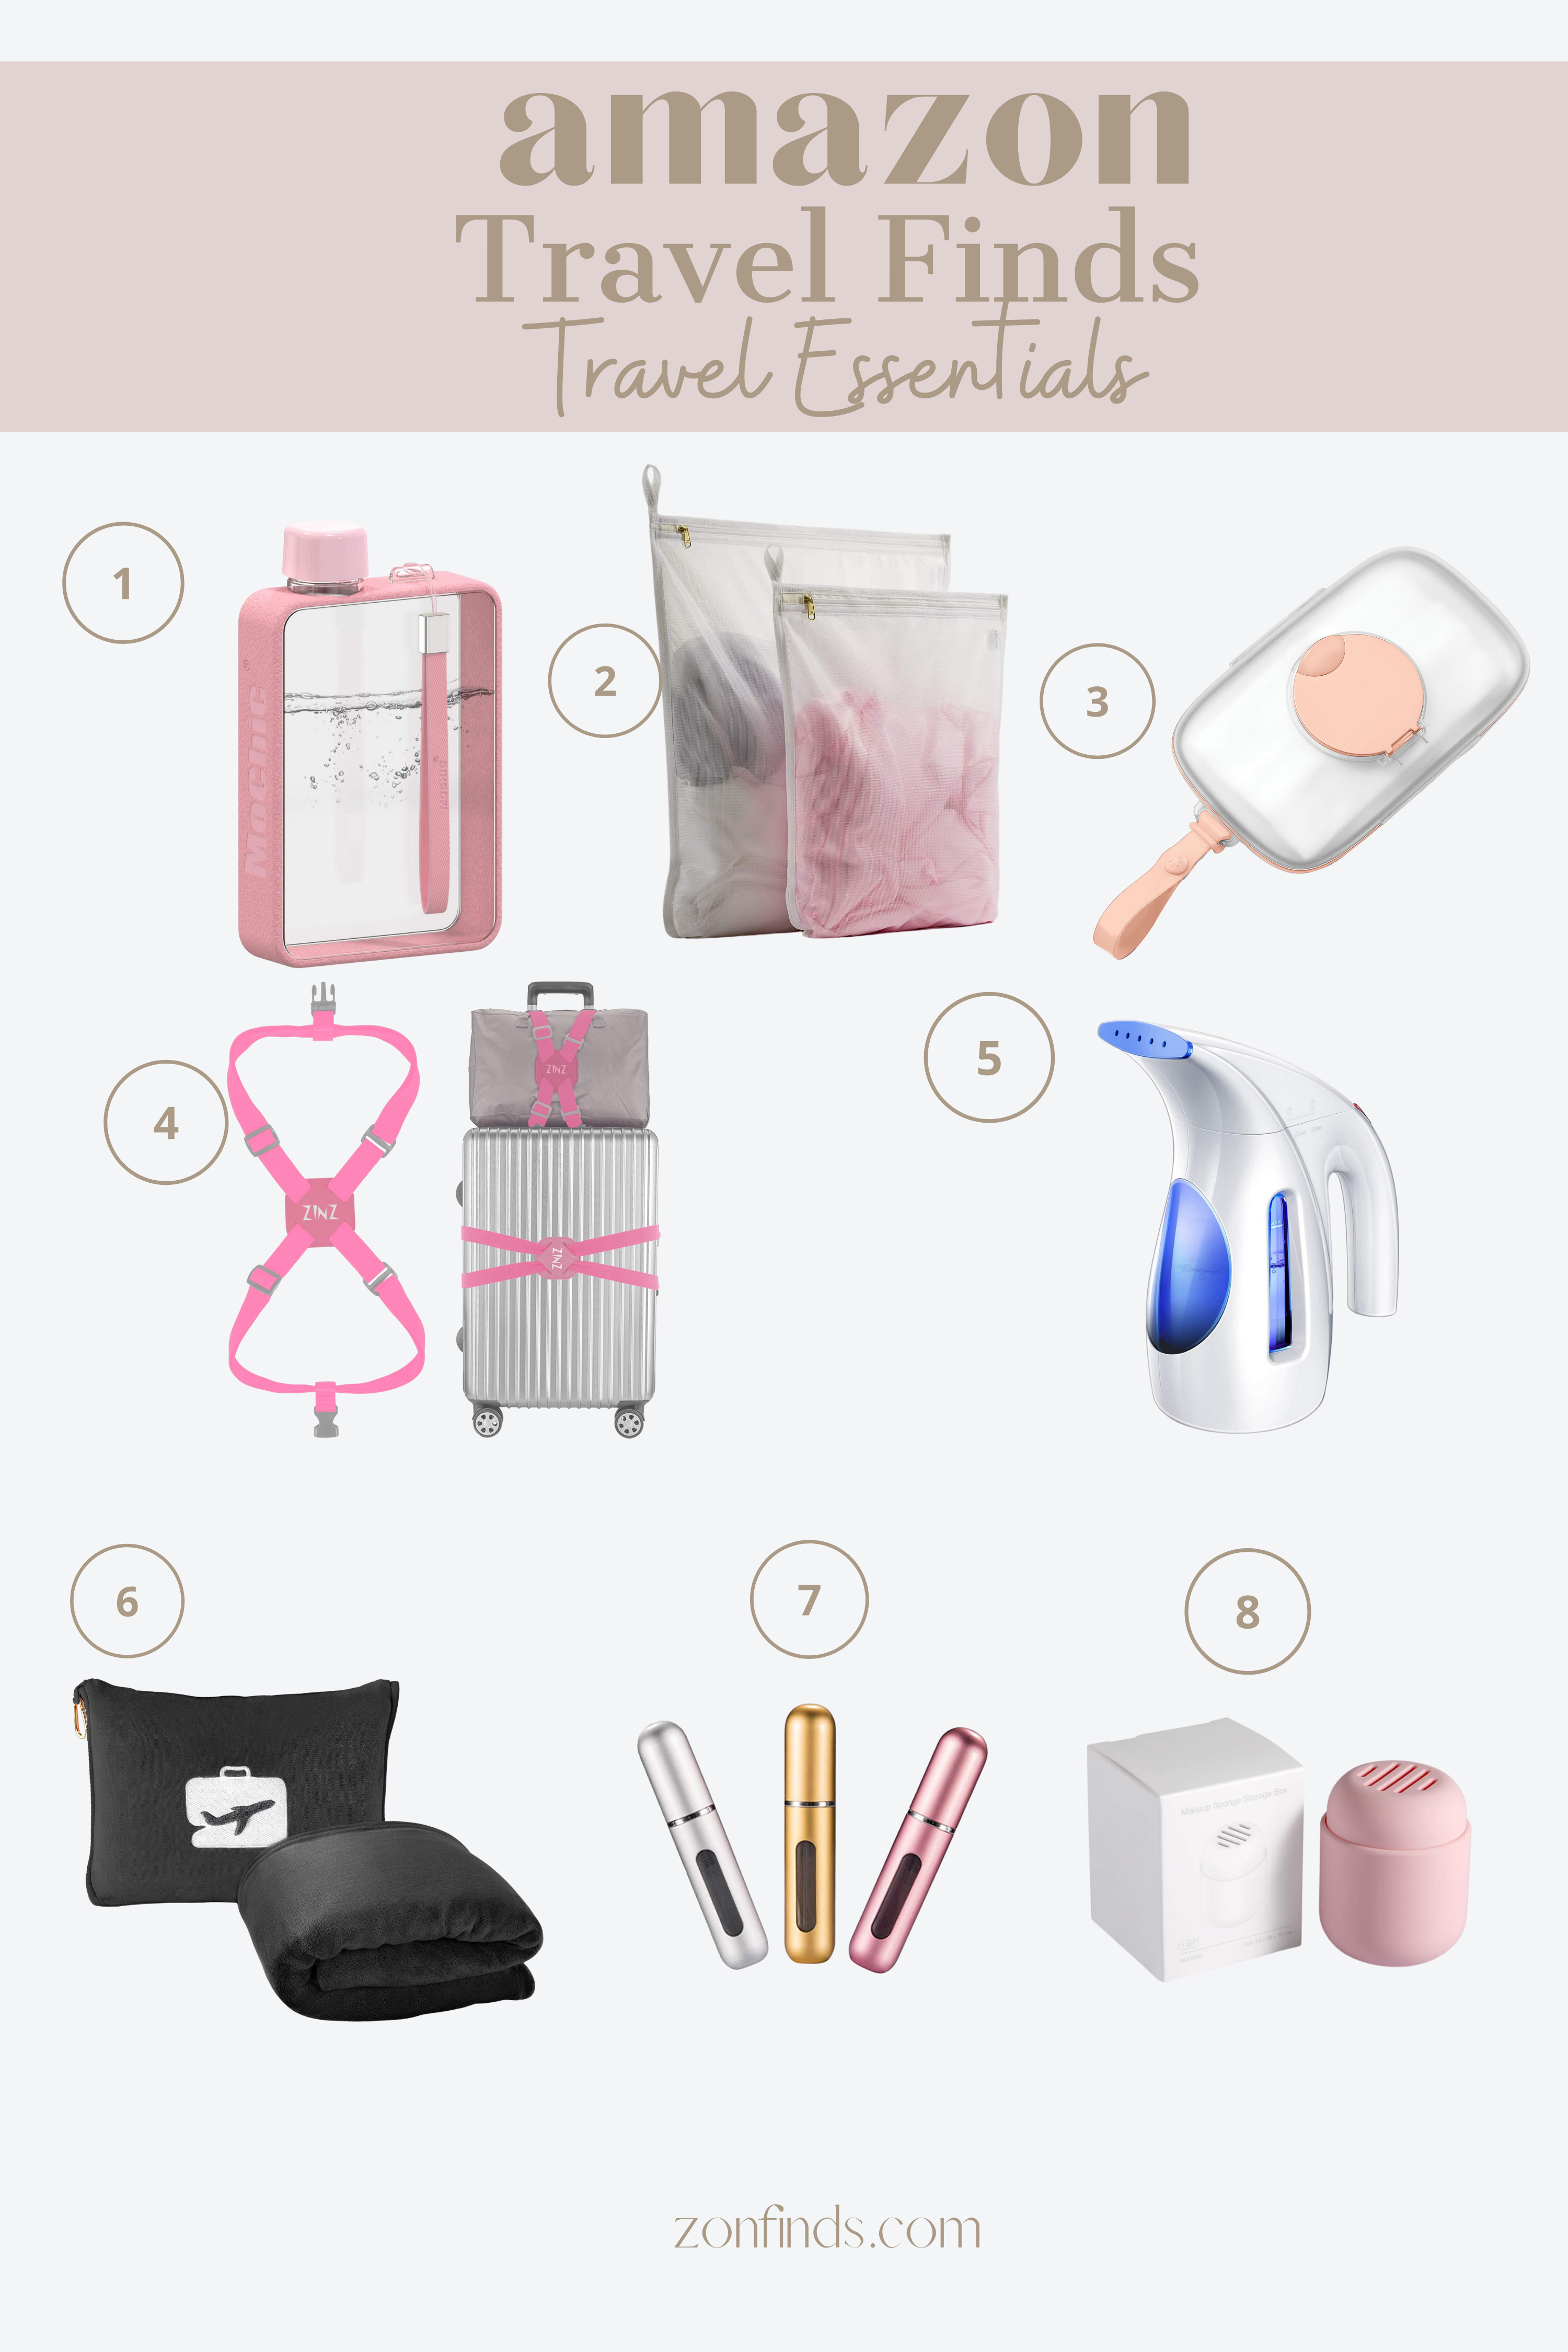 Planning on traveling soon? Here are some of the best Amazon finds for travel. These items will make your trip easier and enjoyable! This cute mini steamer will help you even on your most wrinkly days. Click to check out the rest of these travel must haves.